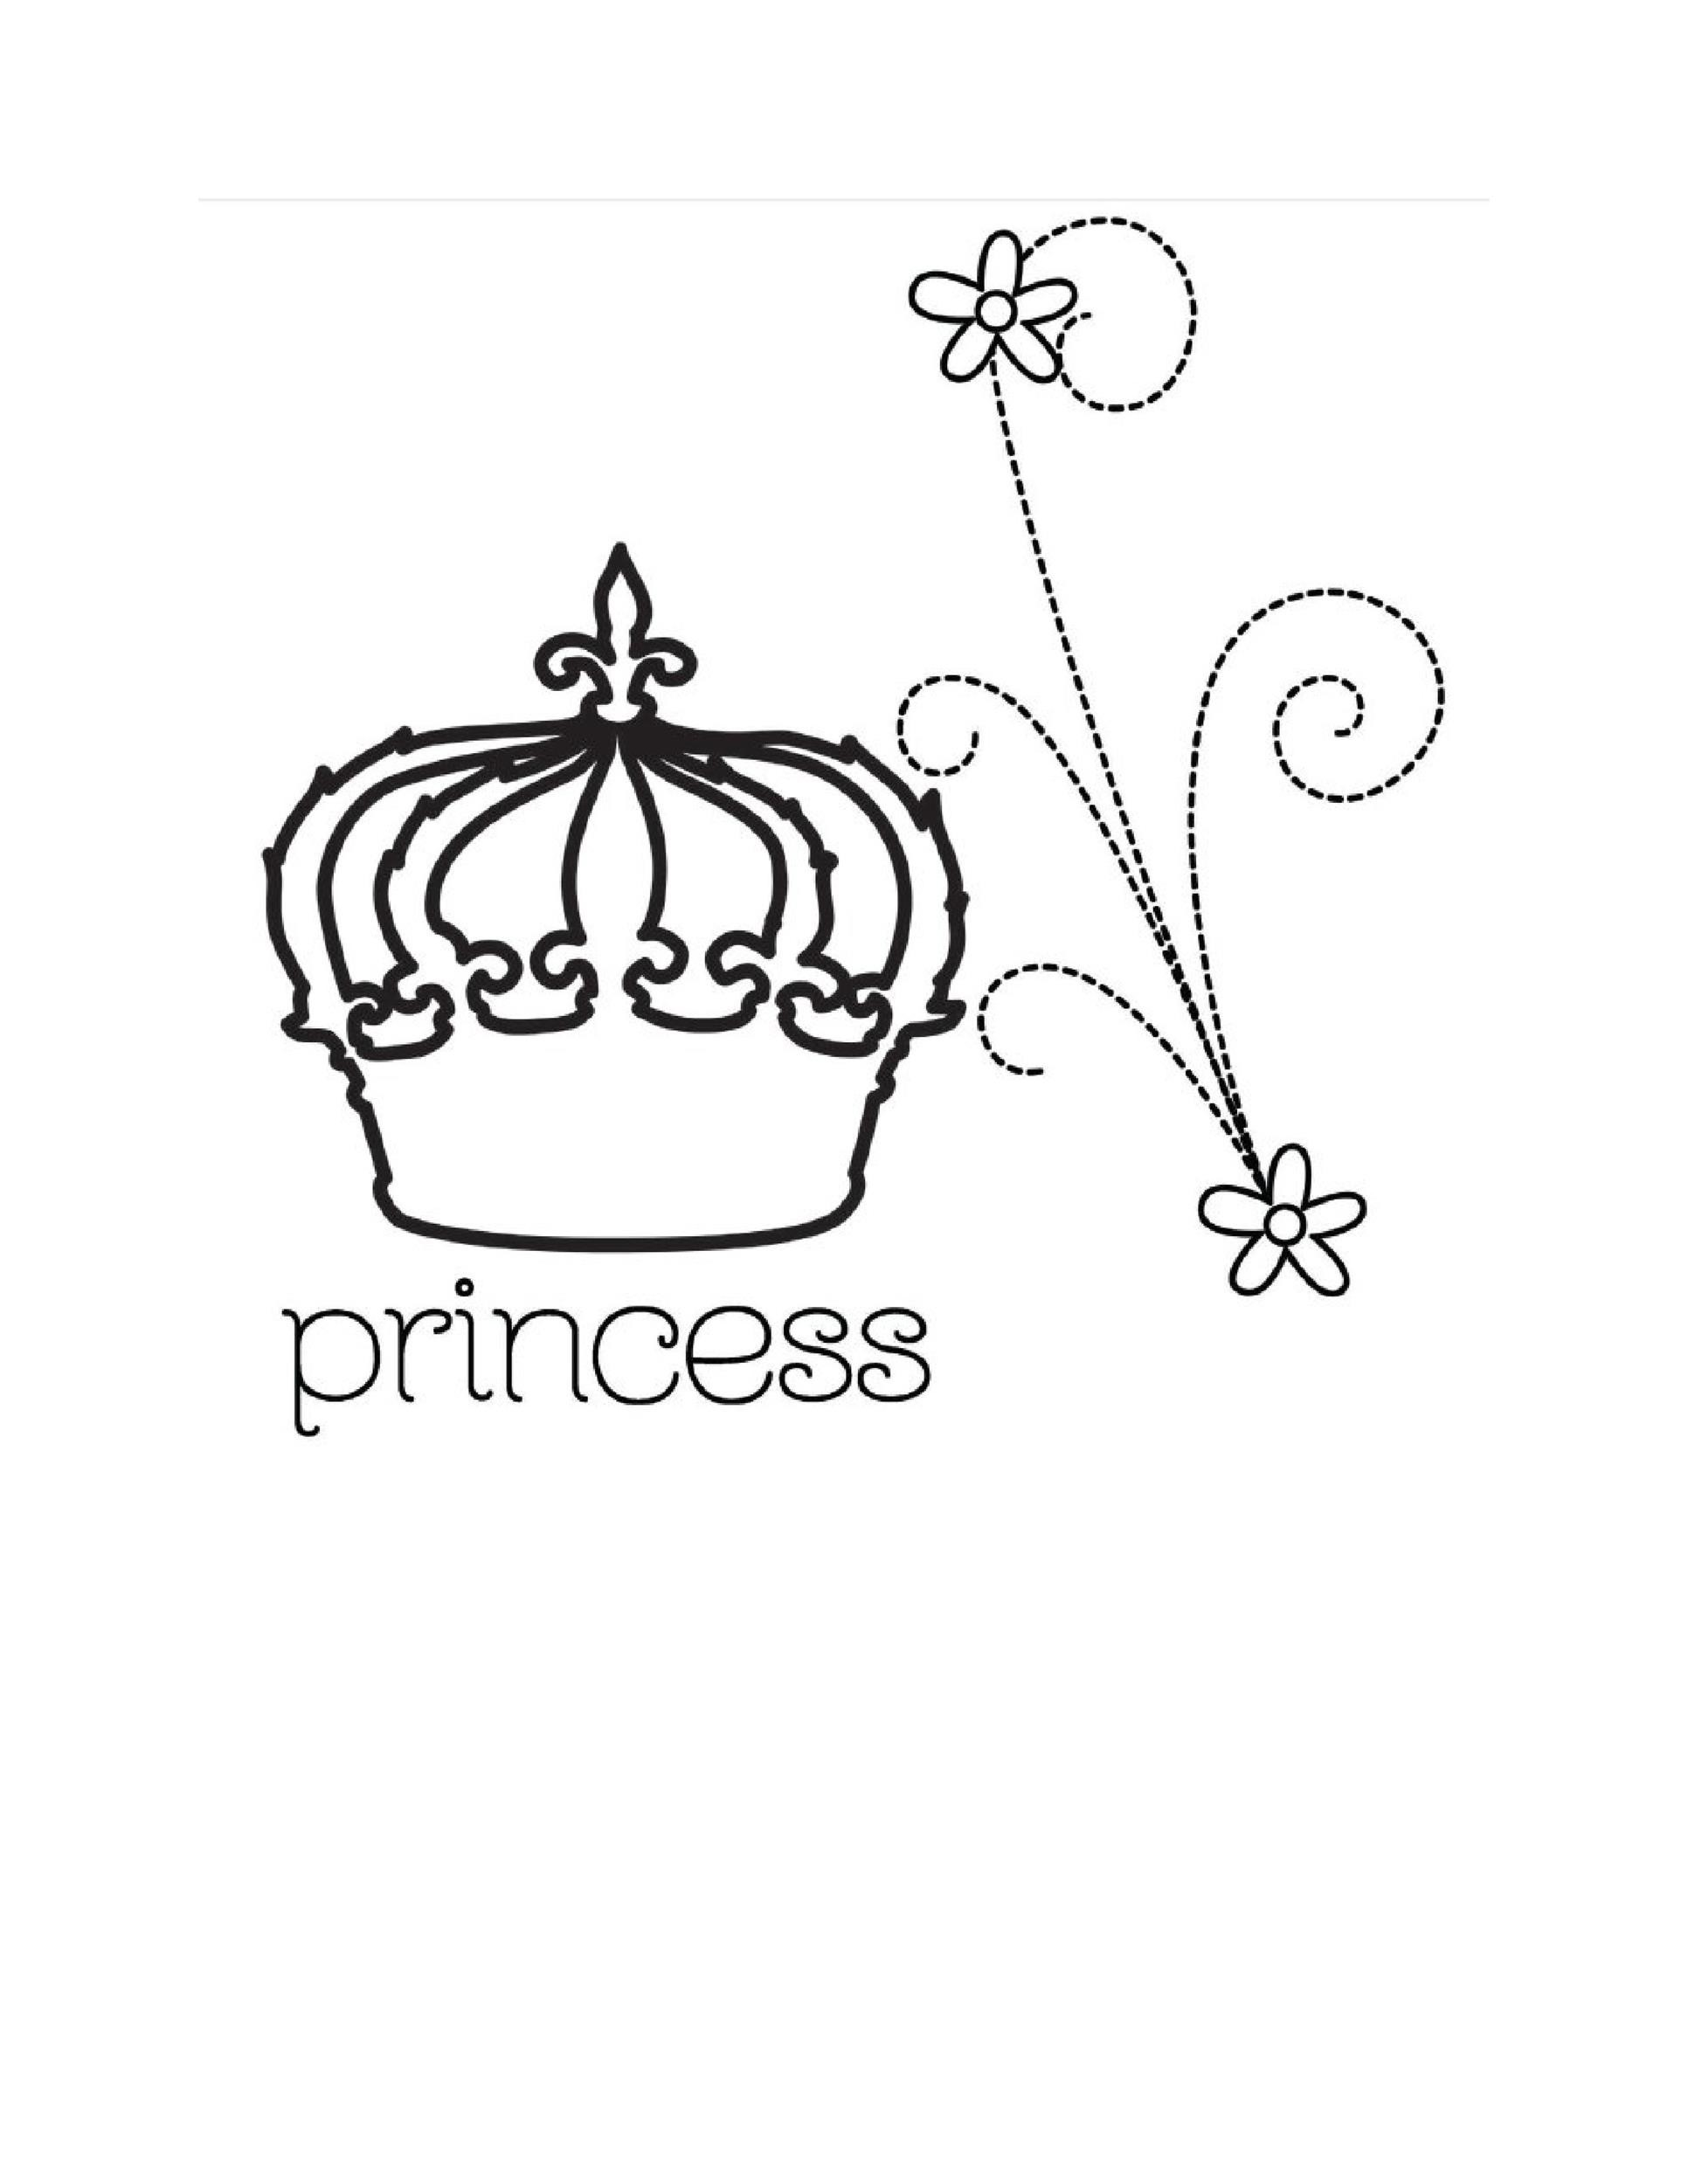 graphic regarding Crown Template Printable named 45 Cost-free Paper Crown Templates ᐅ Template Lab